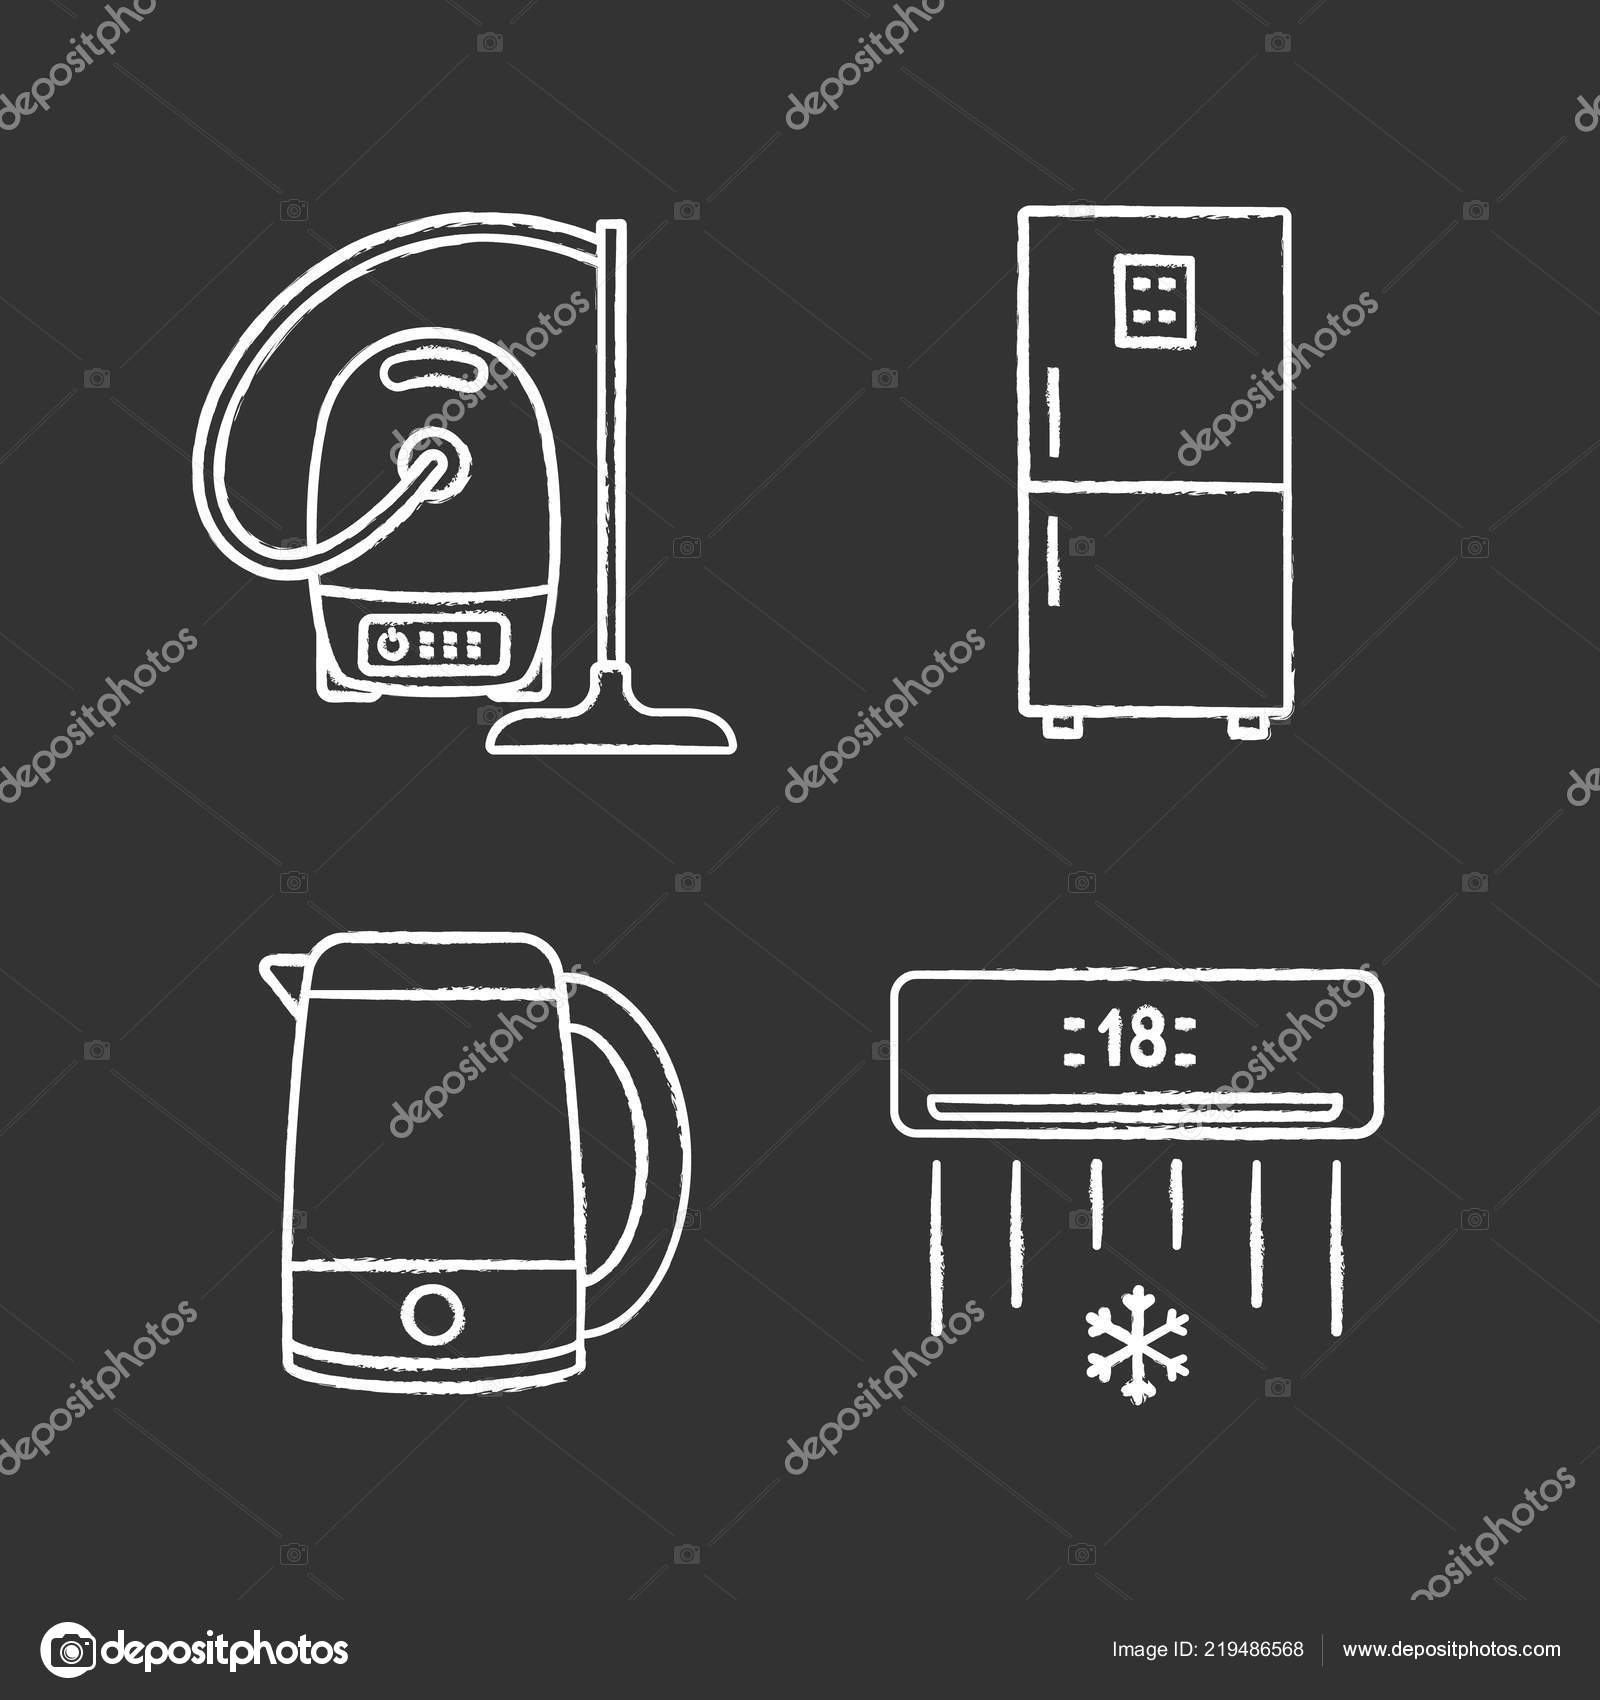 Marvelous Household Appliance Chalk Icons Set Vacuum Cleaner Fridge Electric Wiring Cloud Hisonuggs Outletorg